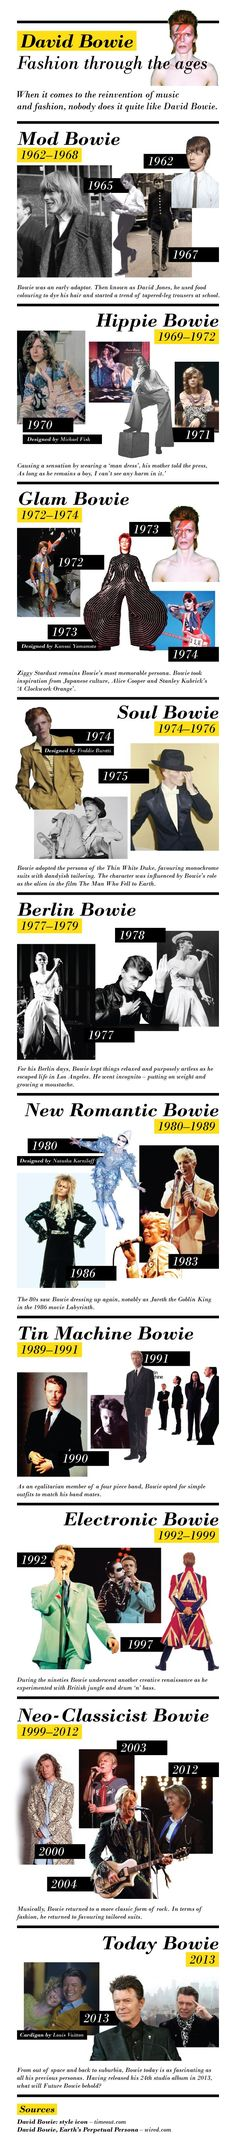 Top results from Amazon.co.uk  David Bowie Memorabilia